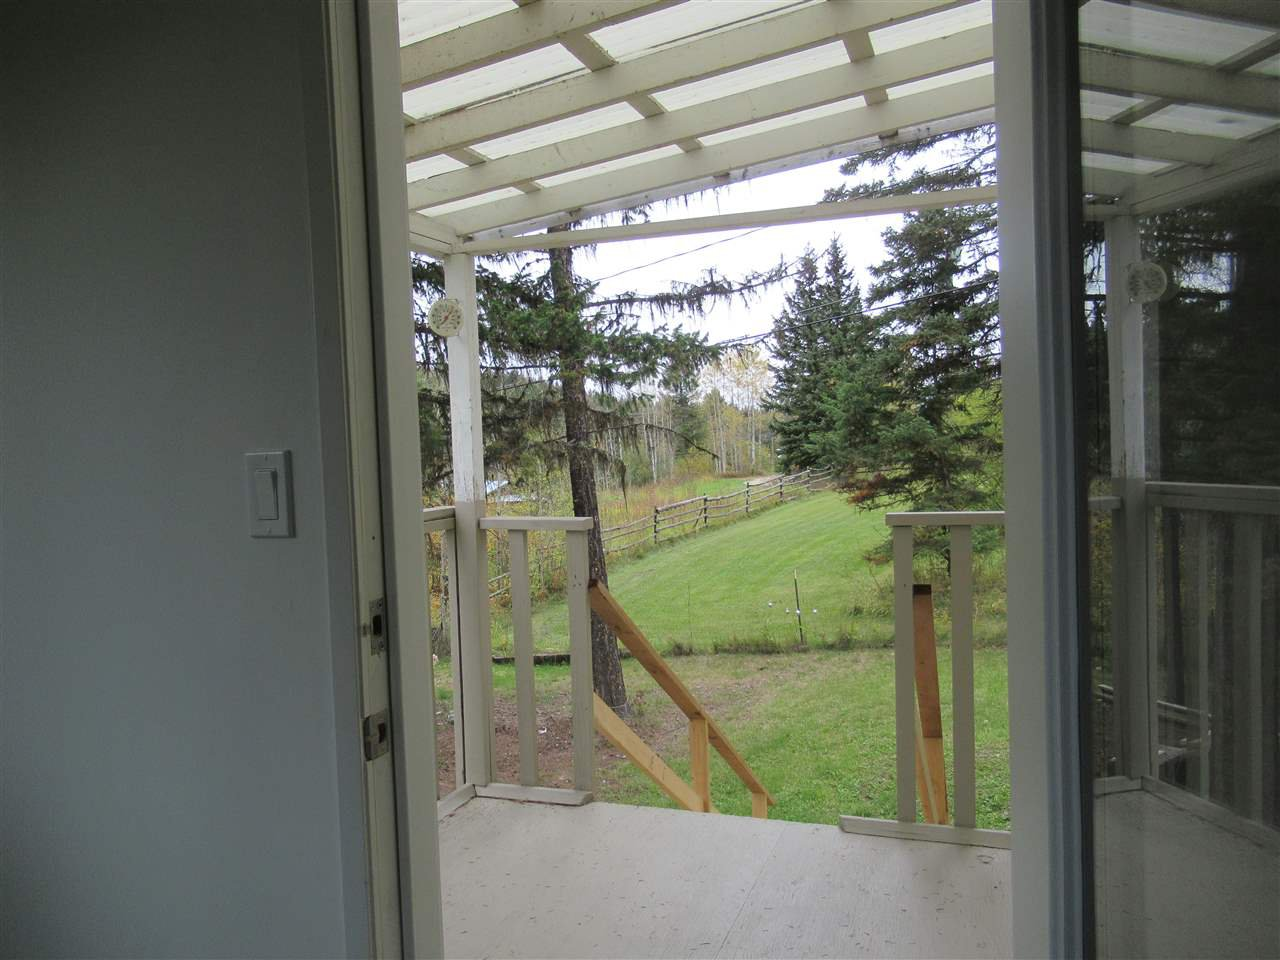 Photo 11: Photos: 3974 SCHARF Road in Williams Lake: Williams Lake - Rural North House for sale (Williams Lake (Zone 27))  : MLS®# R2409567